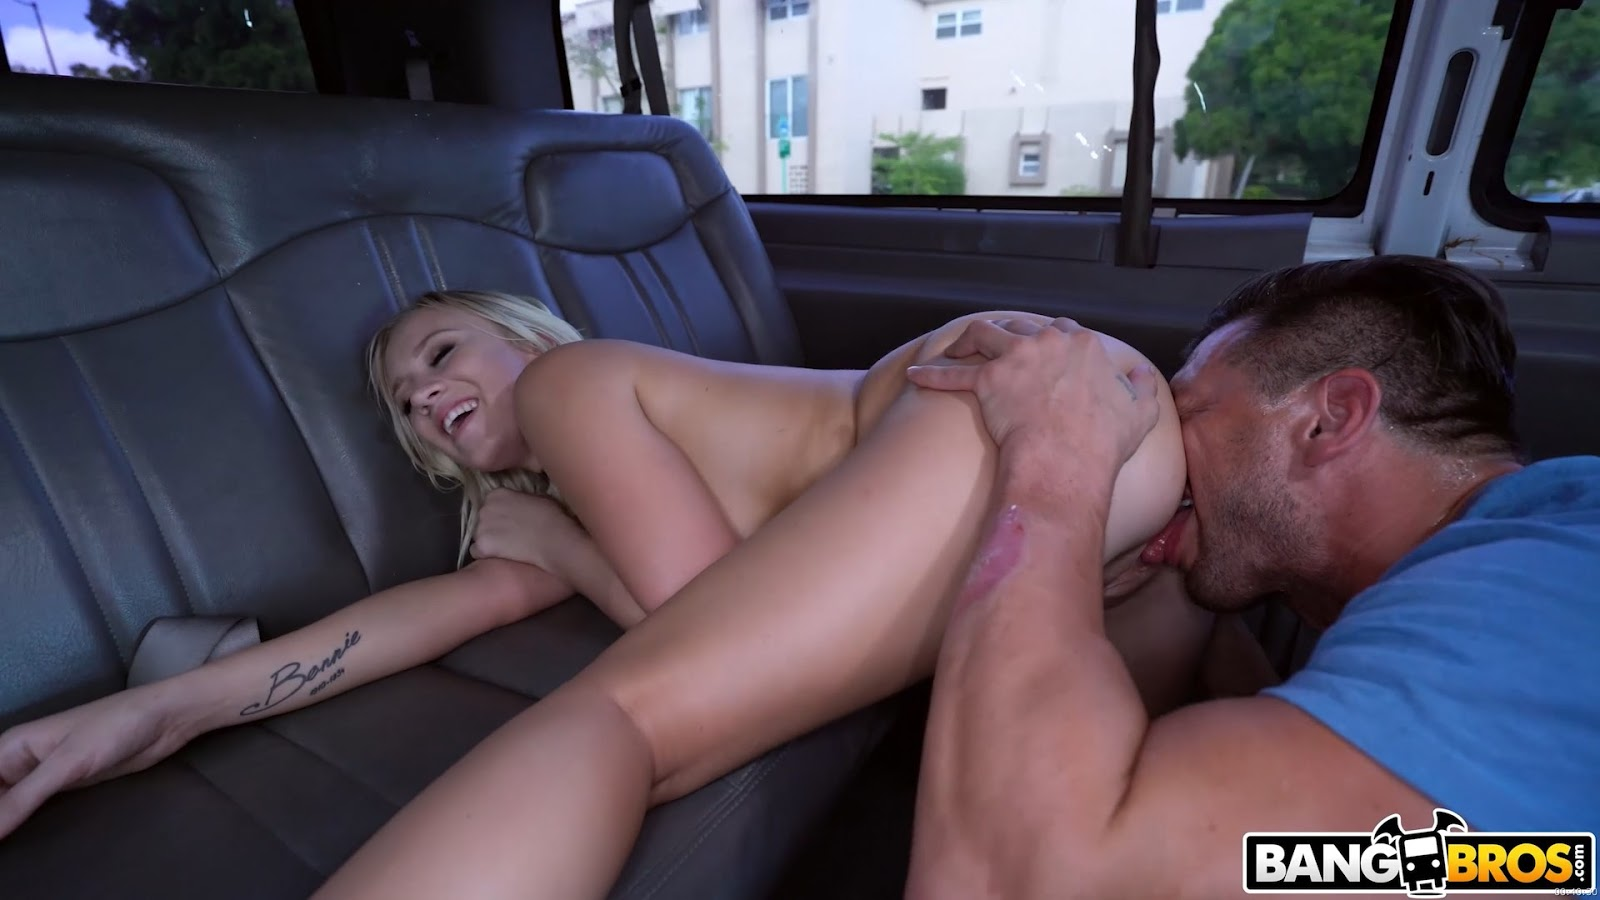 UNCENSORED [bangbros]2017-11-01 Reverse Bus With A Big Booty Blonde, AV uncensored